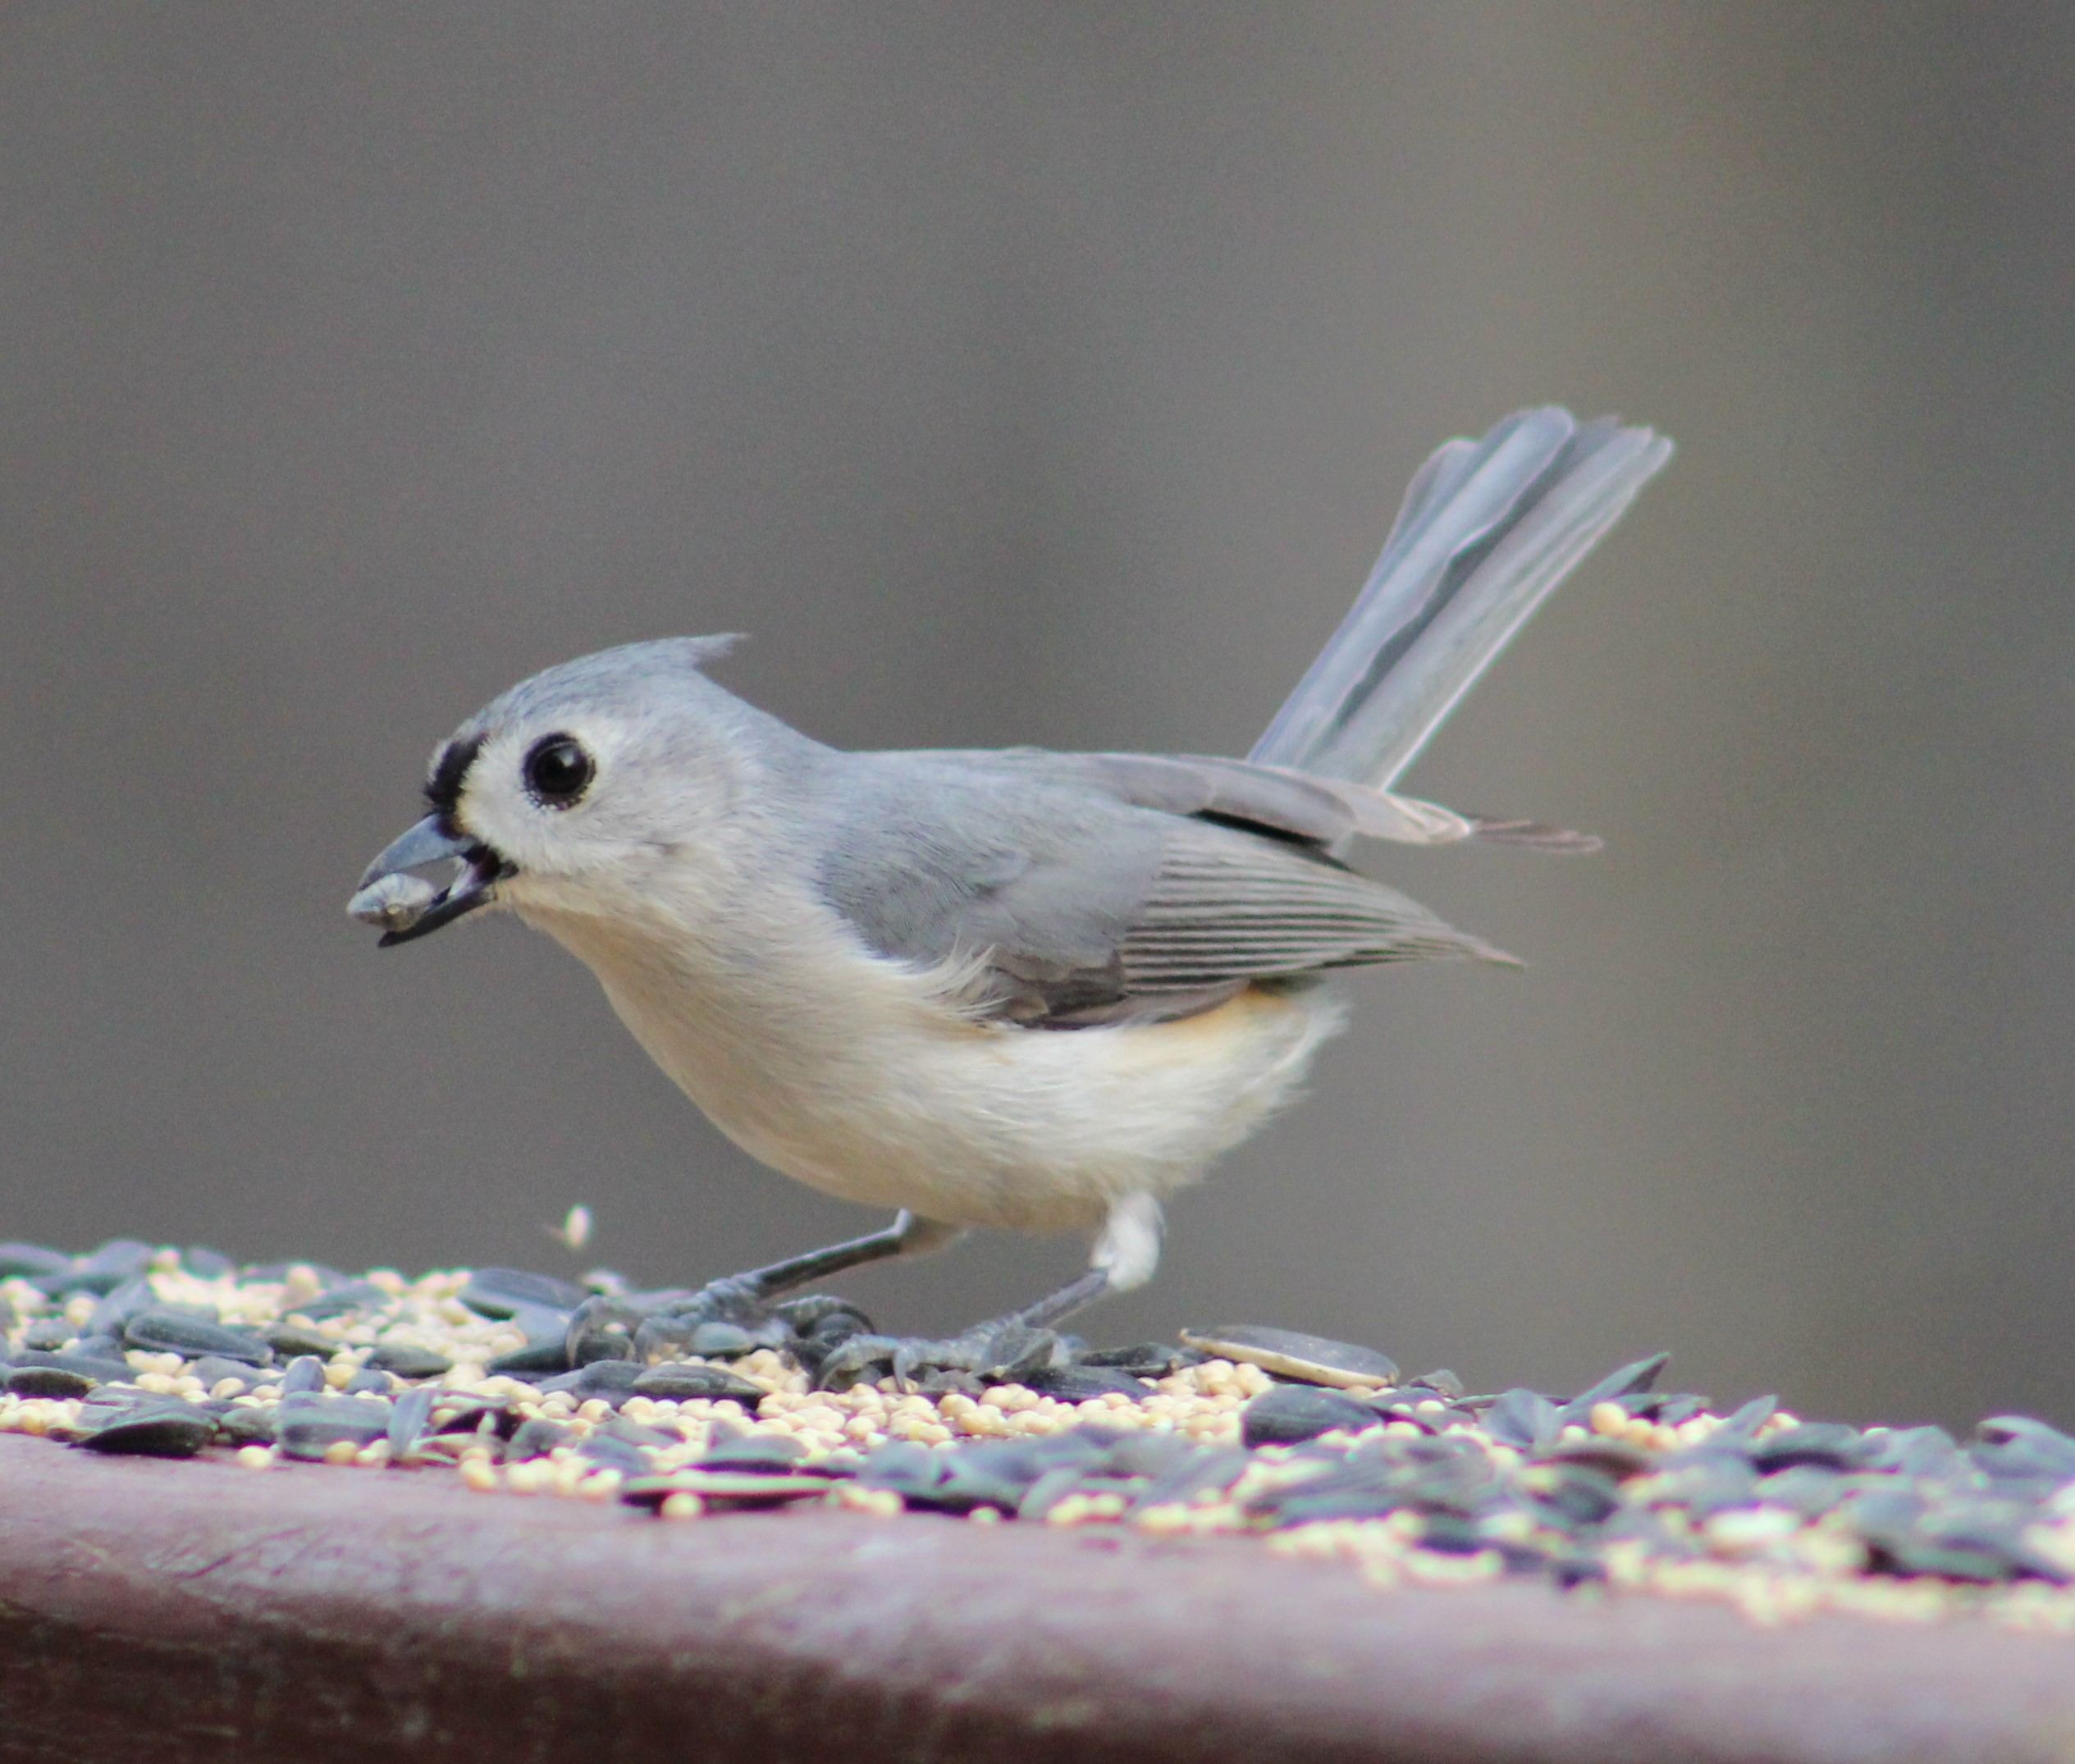 Tuffy the Tufted Titmouse